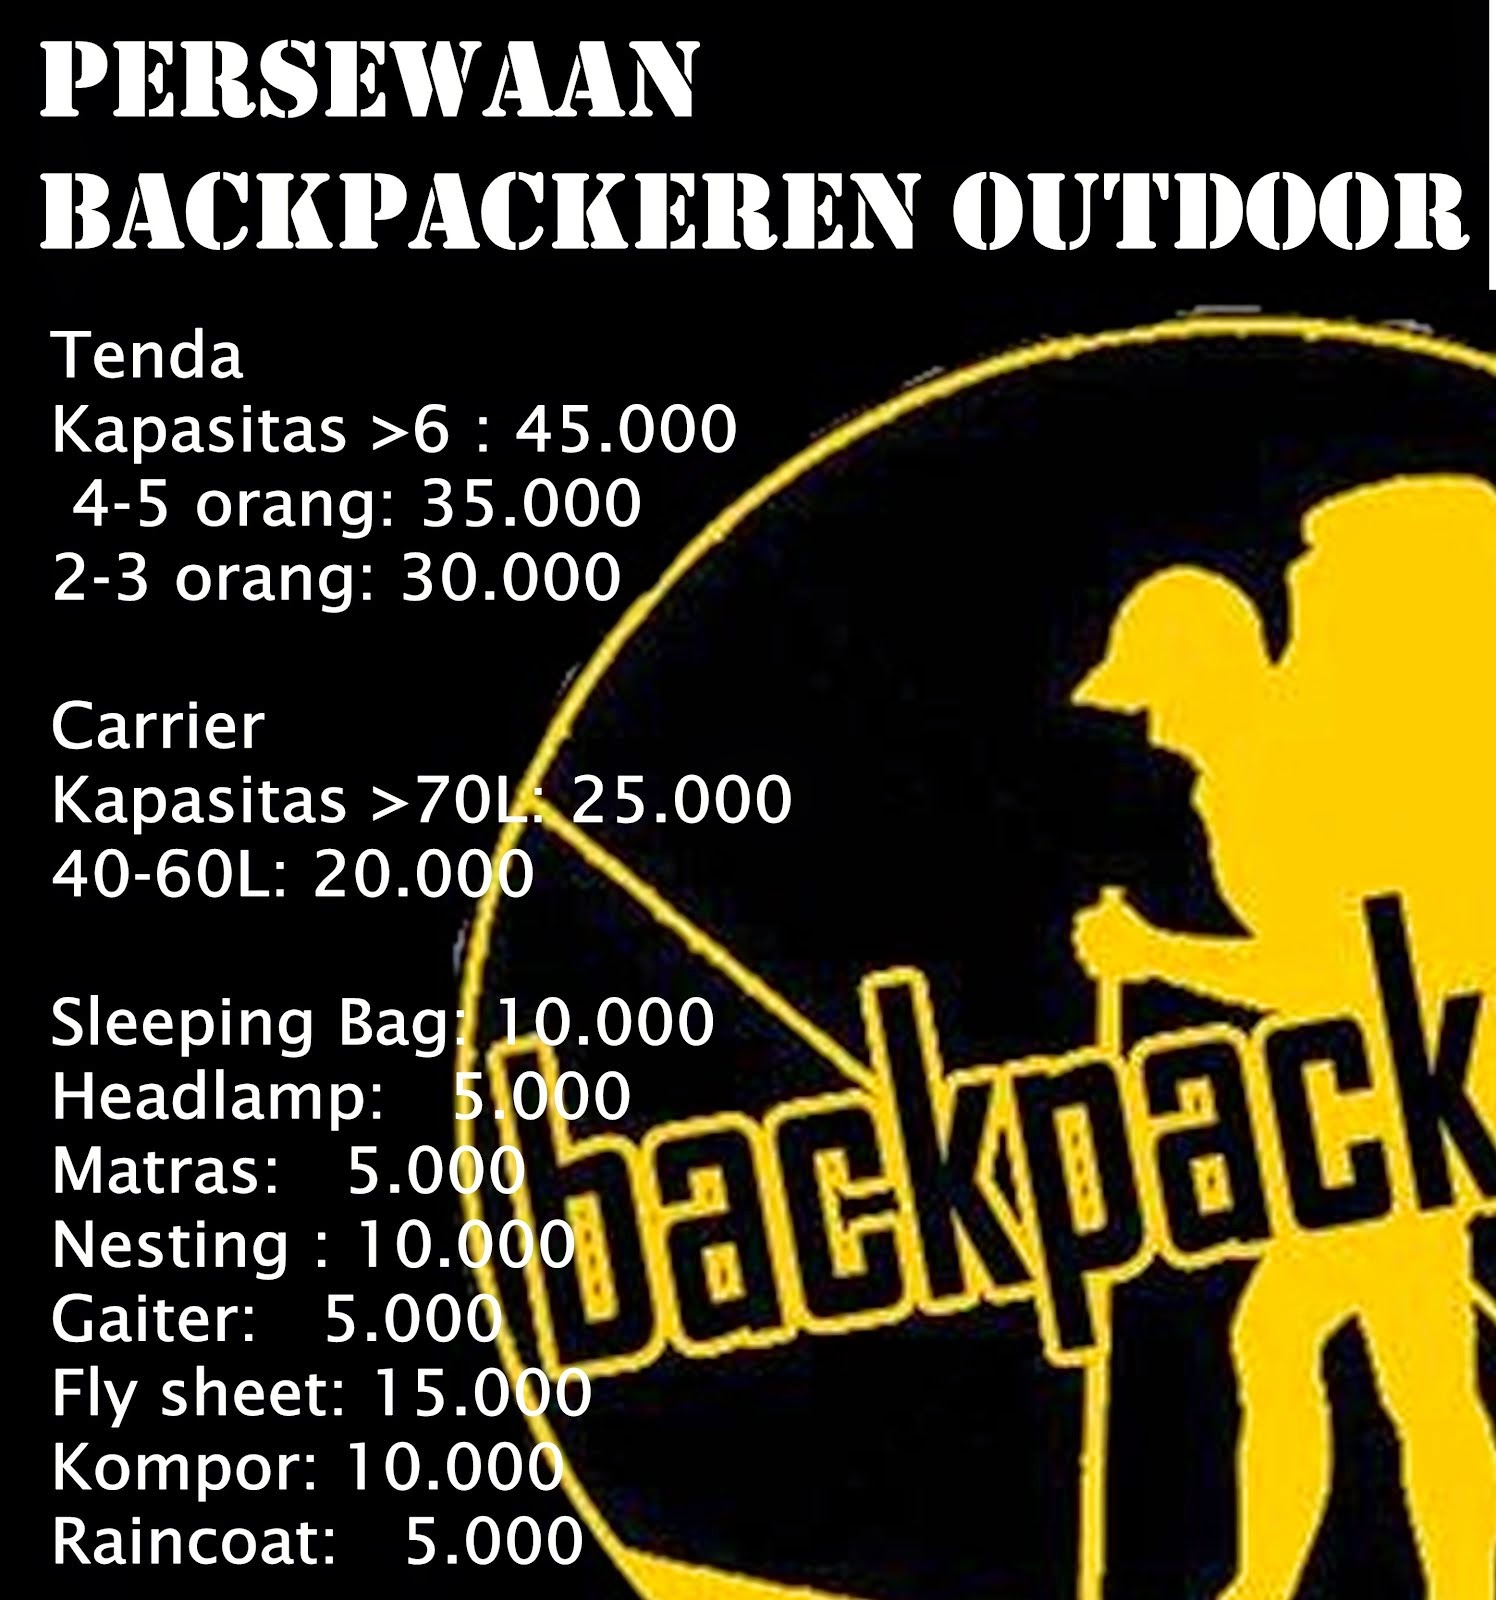 Backpackerent